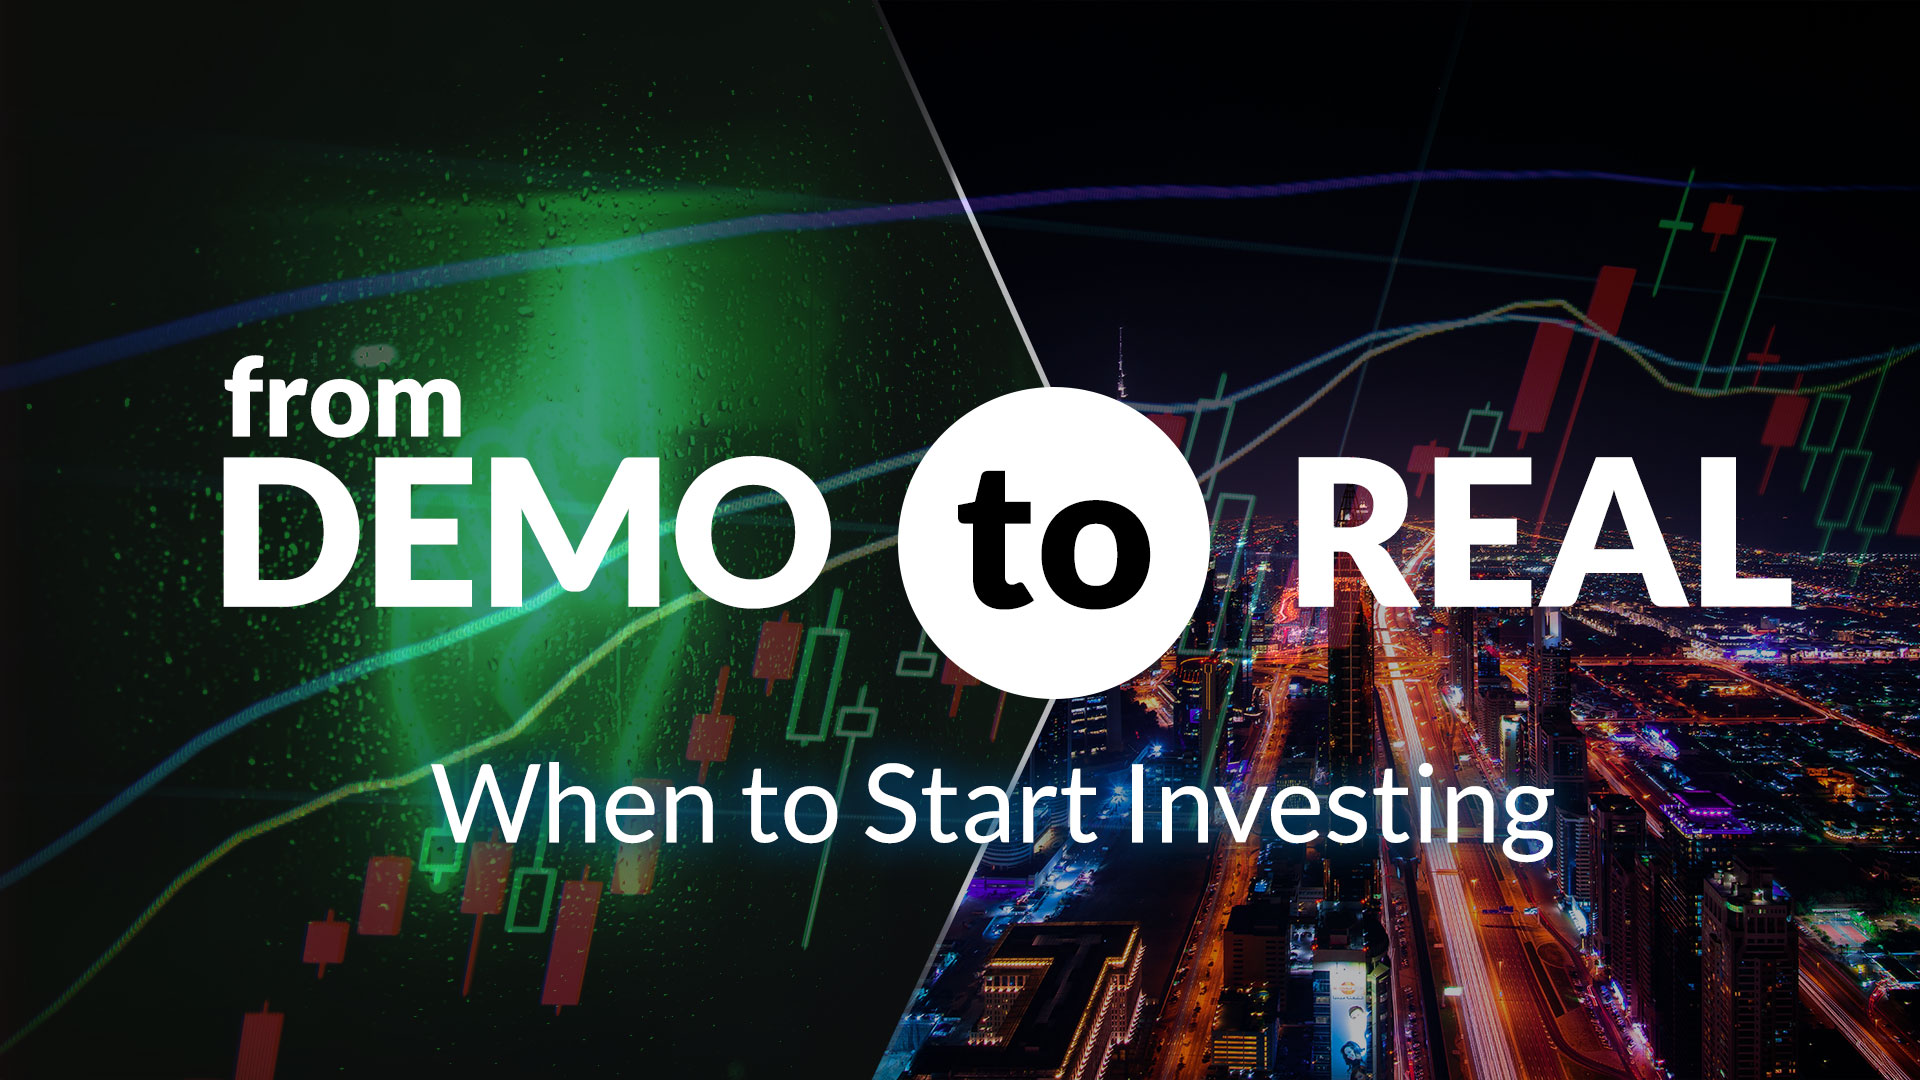 From Demo to Real; When to Start Investing